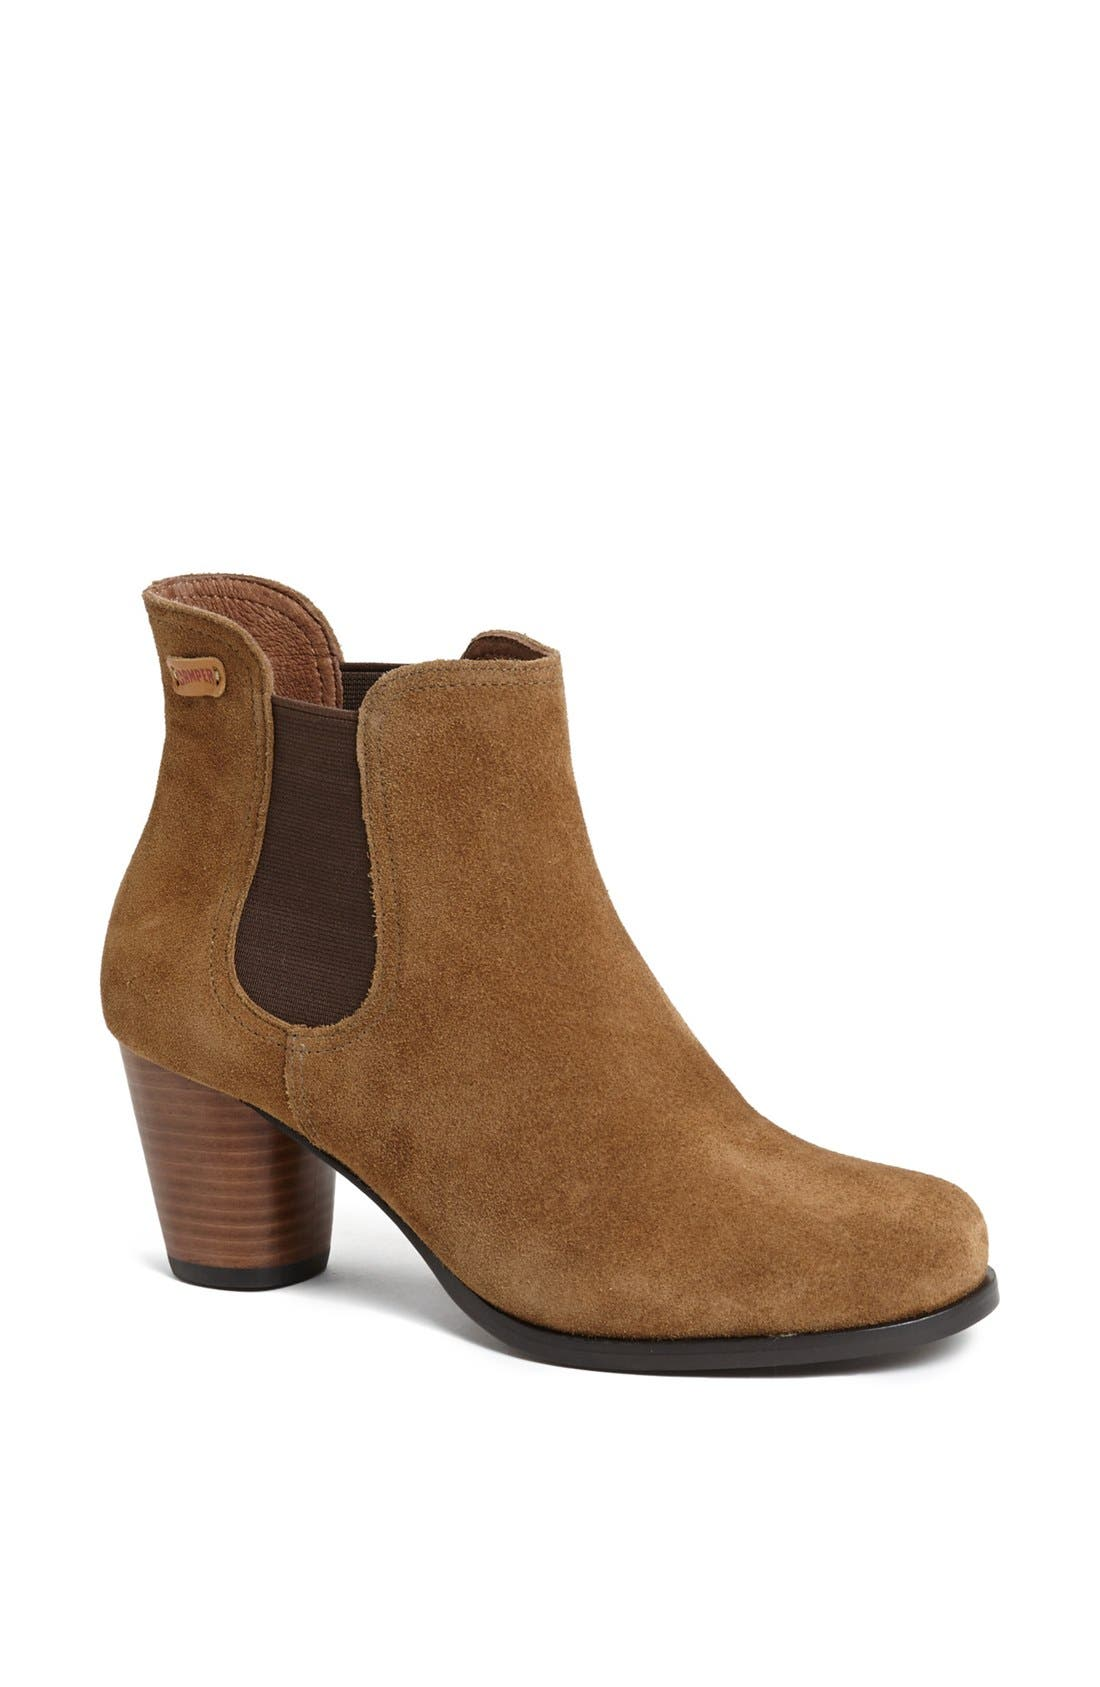 Main Image - Camper 'Annie' Ankle Bootie